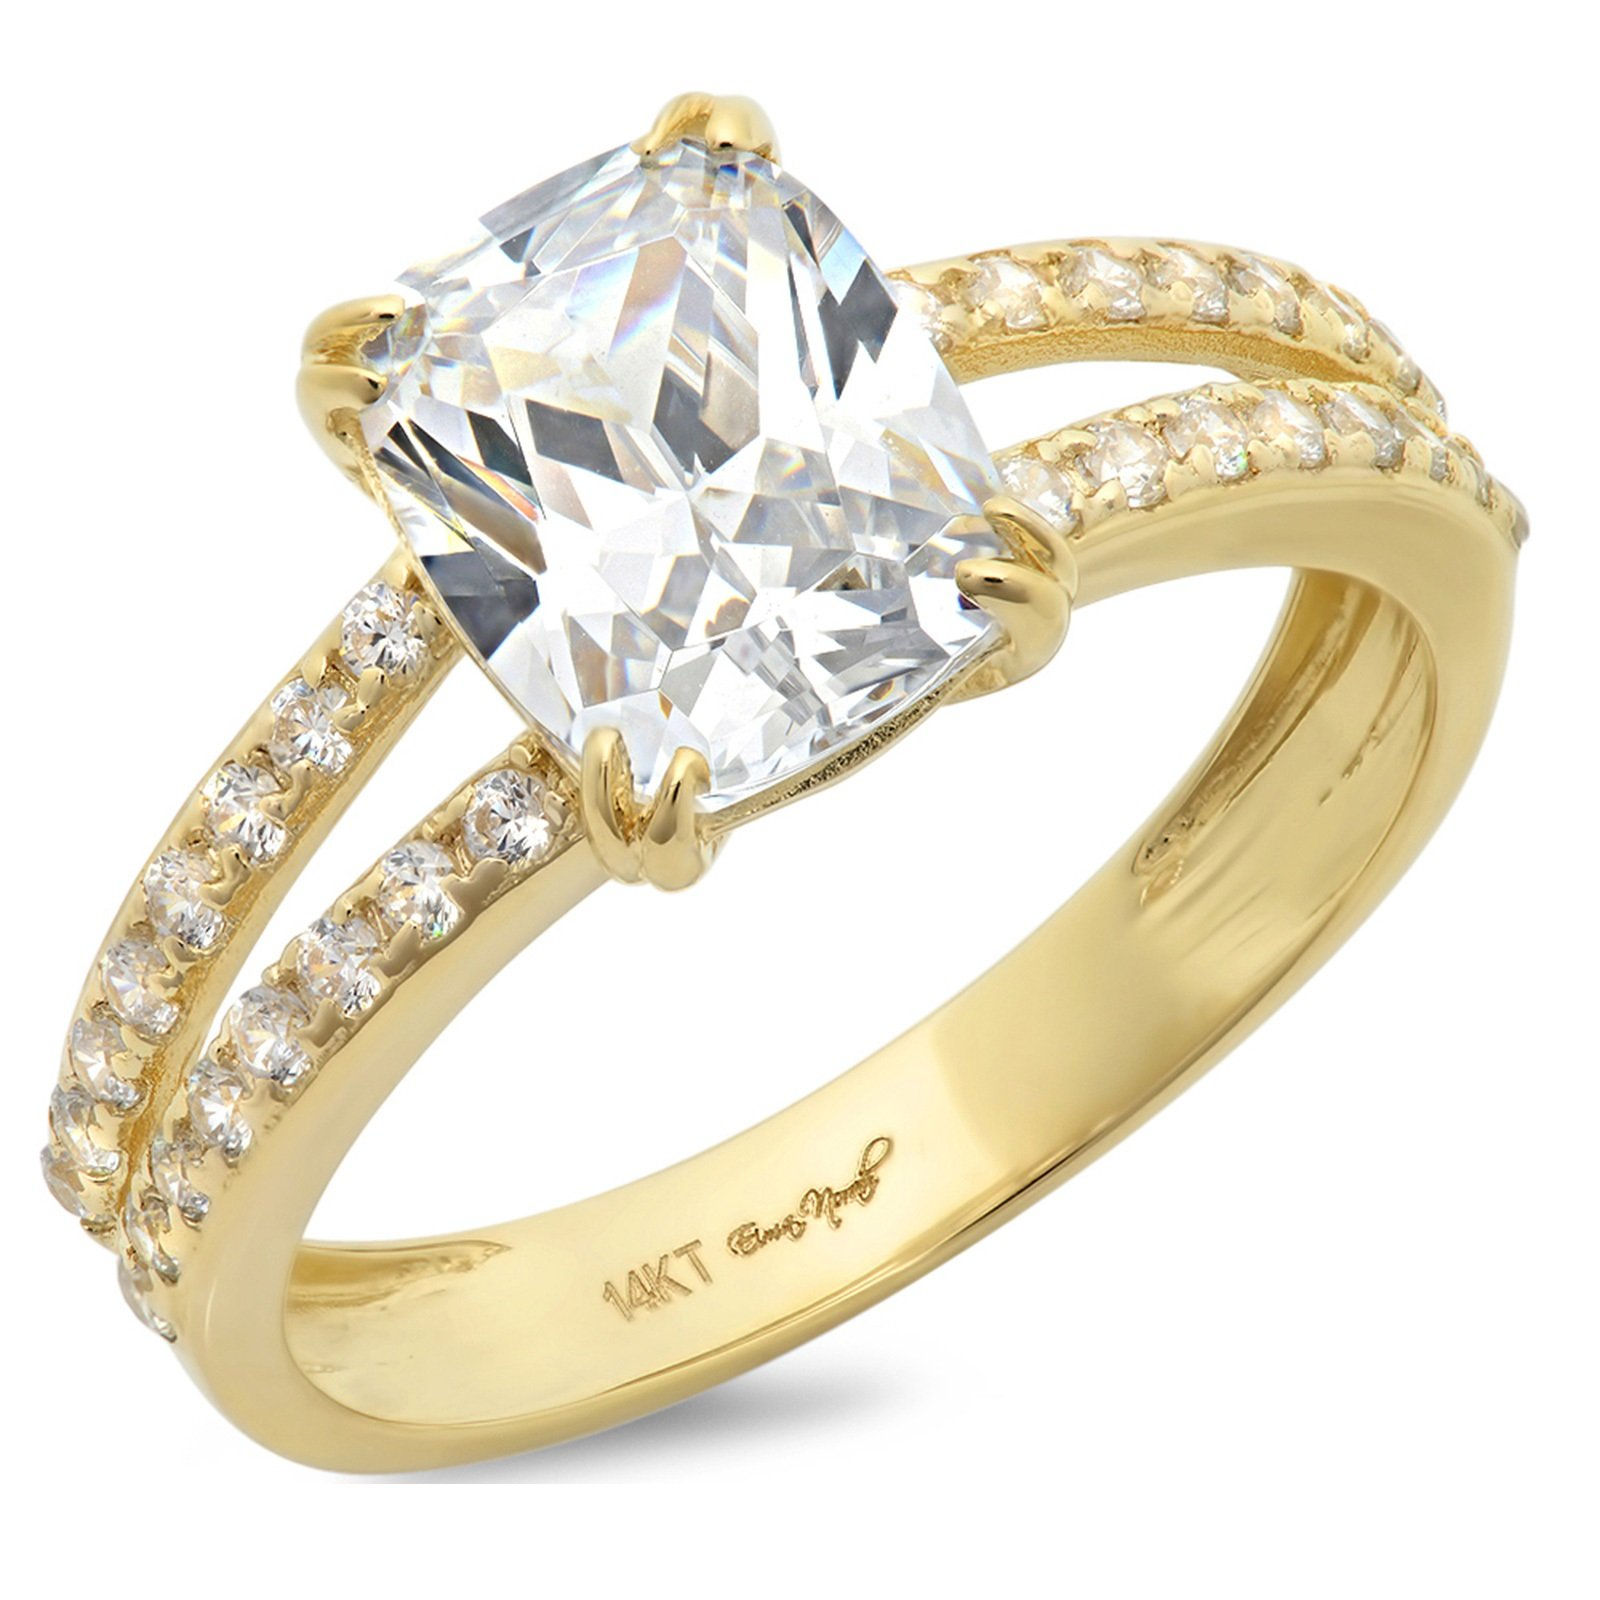 Clara Pucci 4.55 CT Cushion Cut CZ Solitaire Engagement Ring 14K Yellow Gold Bridal Jewelry, Size 5.5 by Clara Pucci